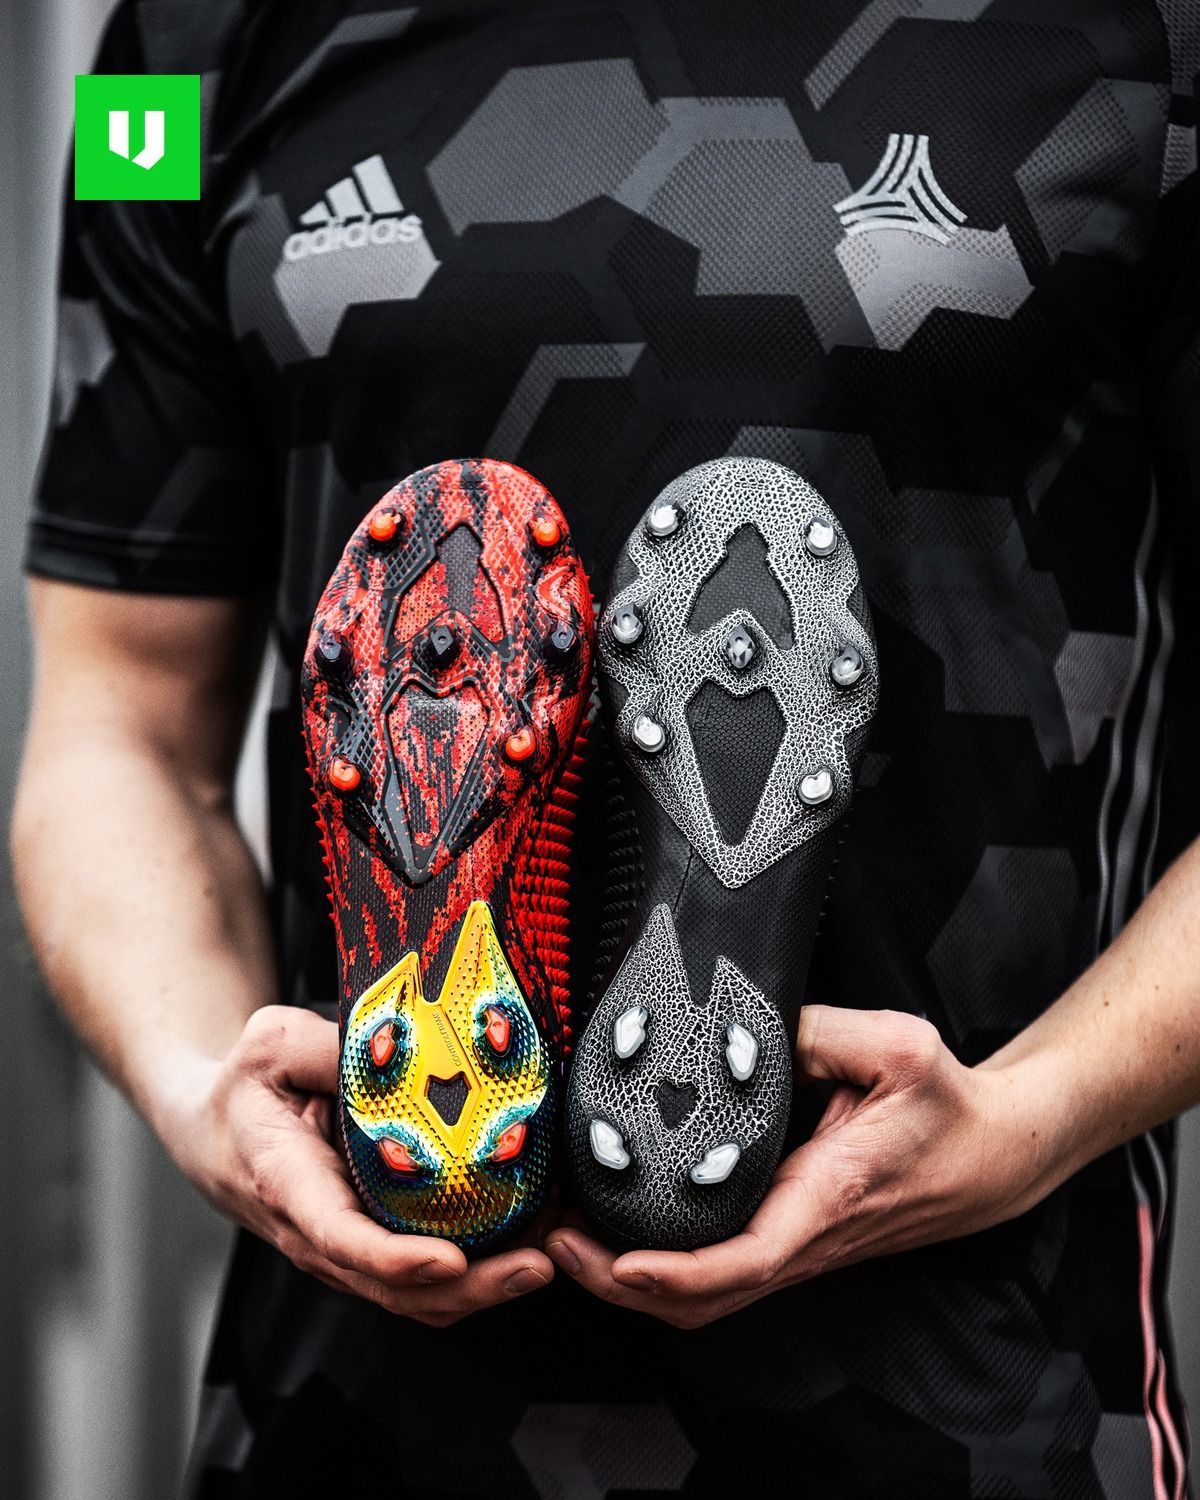 The Sole Of A Predator In 2020 Predator Football Boots Soccer Boots Latest Football Boots